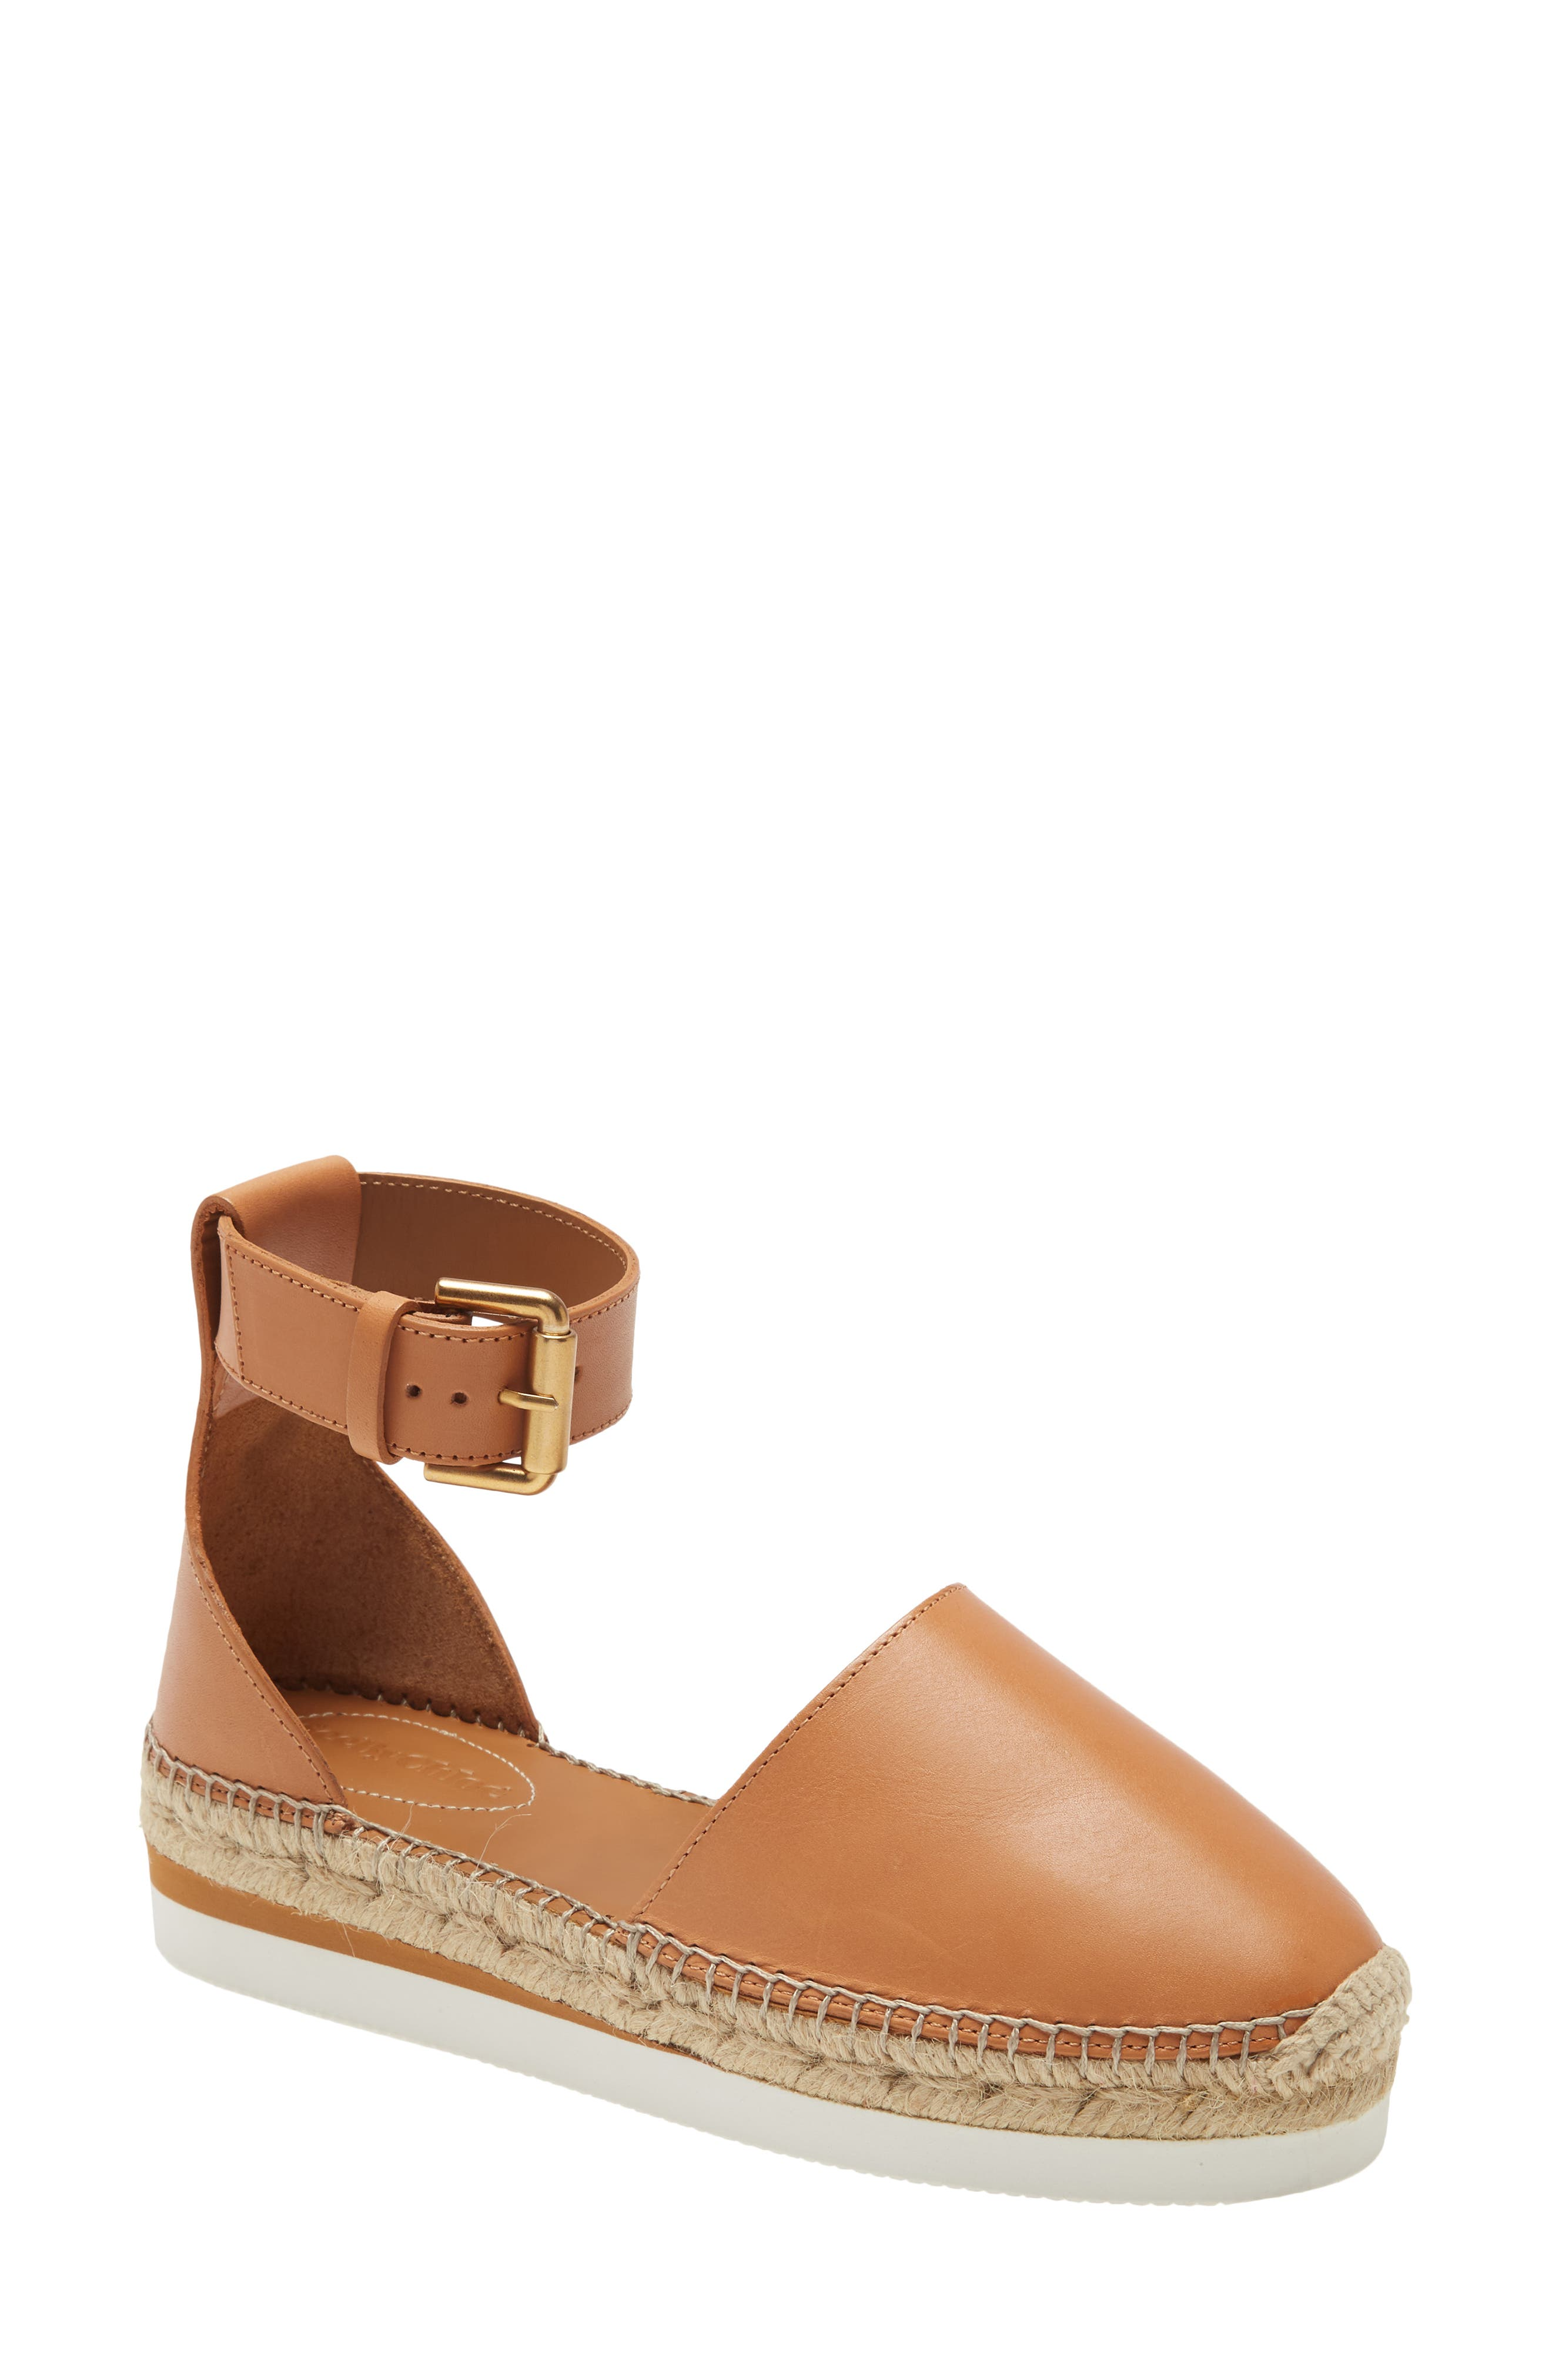 Women's See by Chloé Shoes   Nordstrom